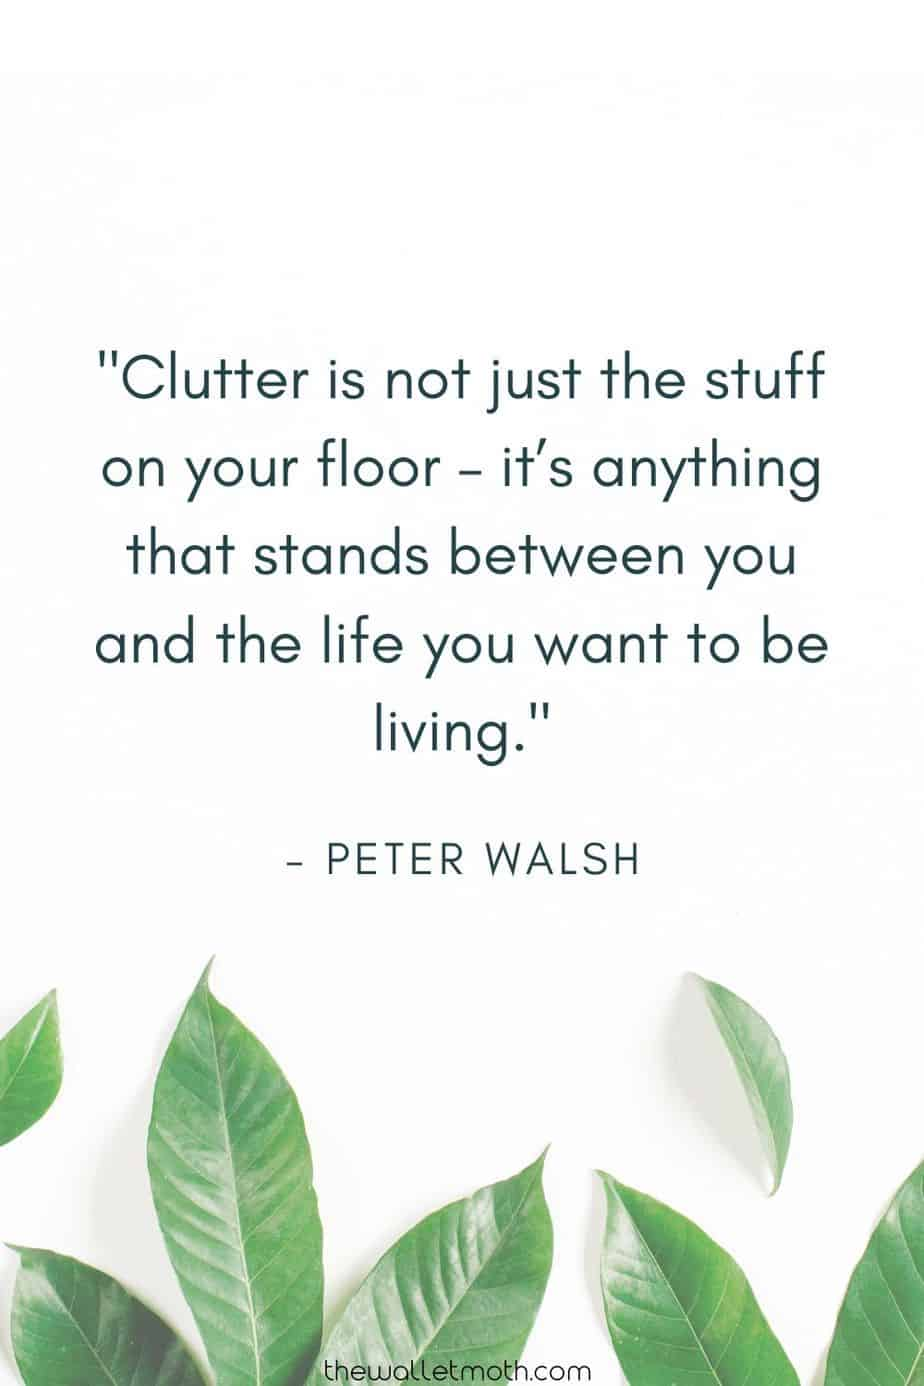 """Clutter is not just the stuff on your floor - it's anything that stands between you and the life you want to be living."""